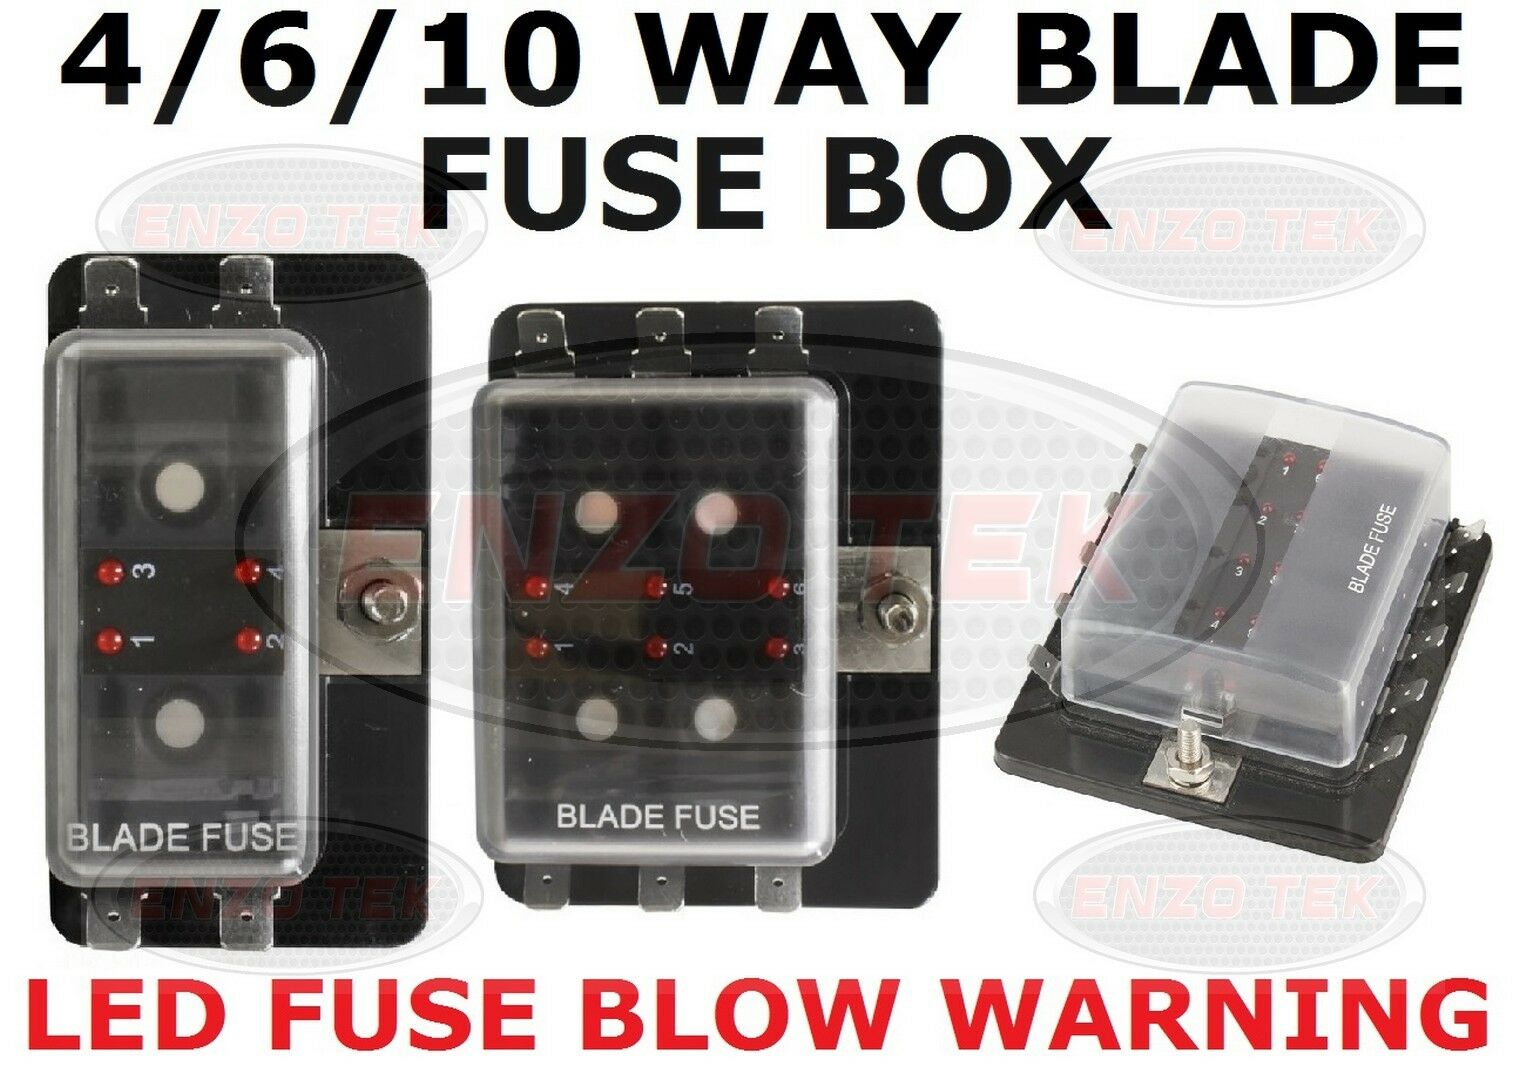 4 6 10 Way Power In Blade Fuse Box Holder With Led Failure Warning 1 Of 1free Shipping